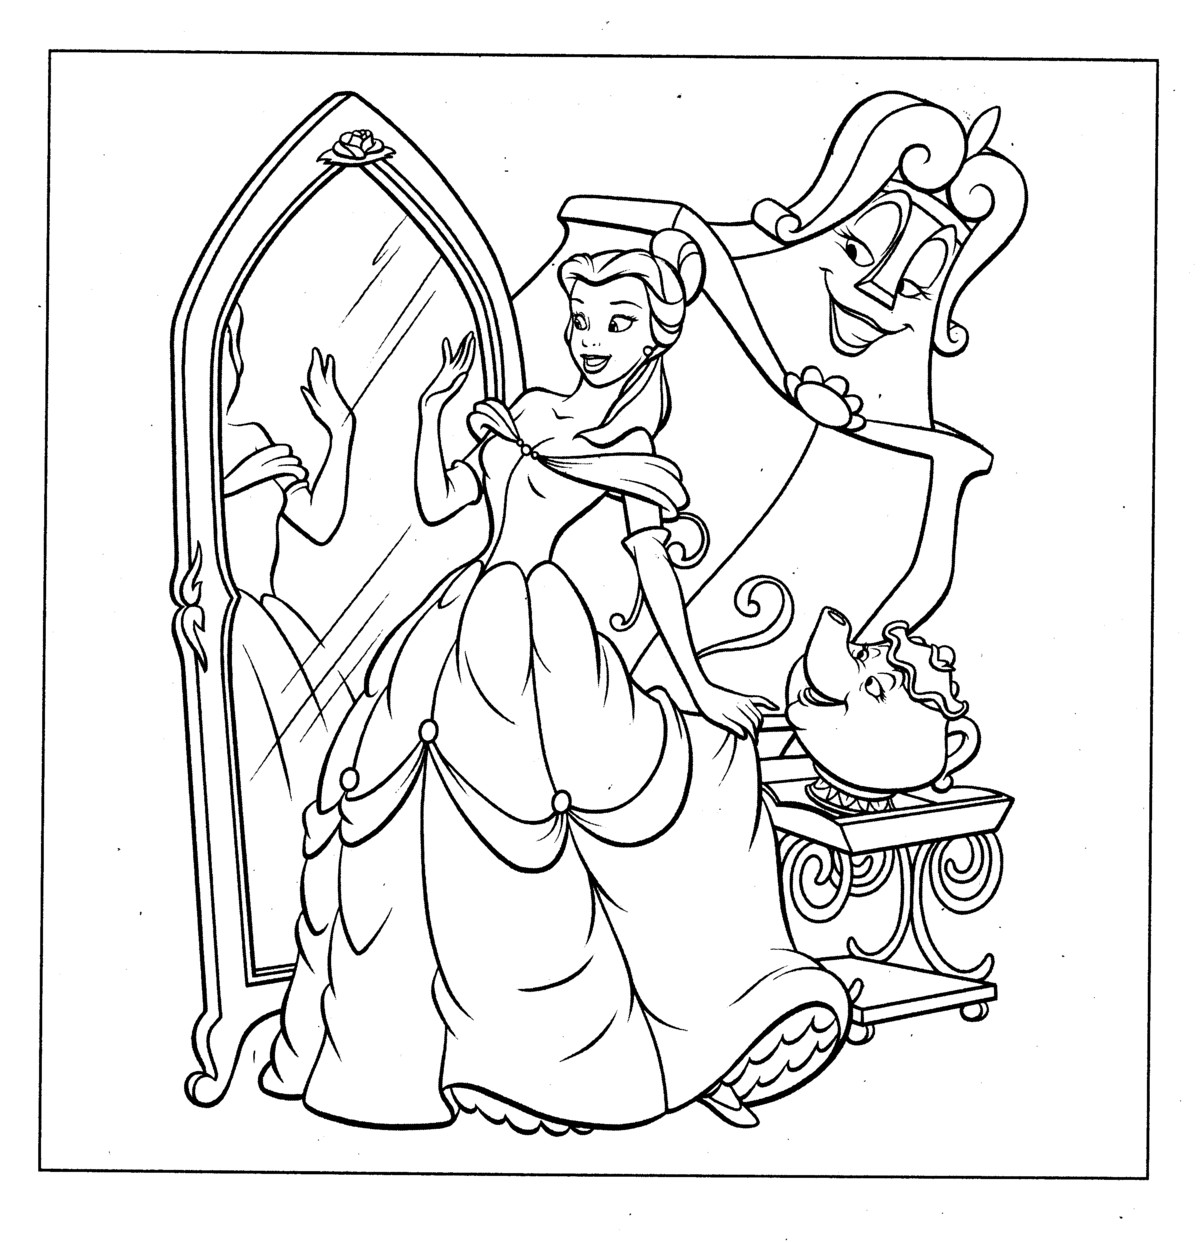 Disney Princess Belle Coloring Pages To Kids | free printable coloring pages disney princesses